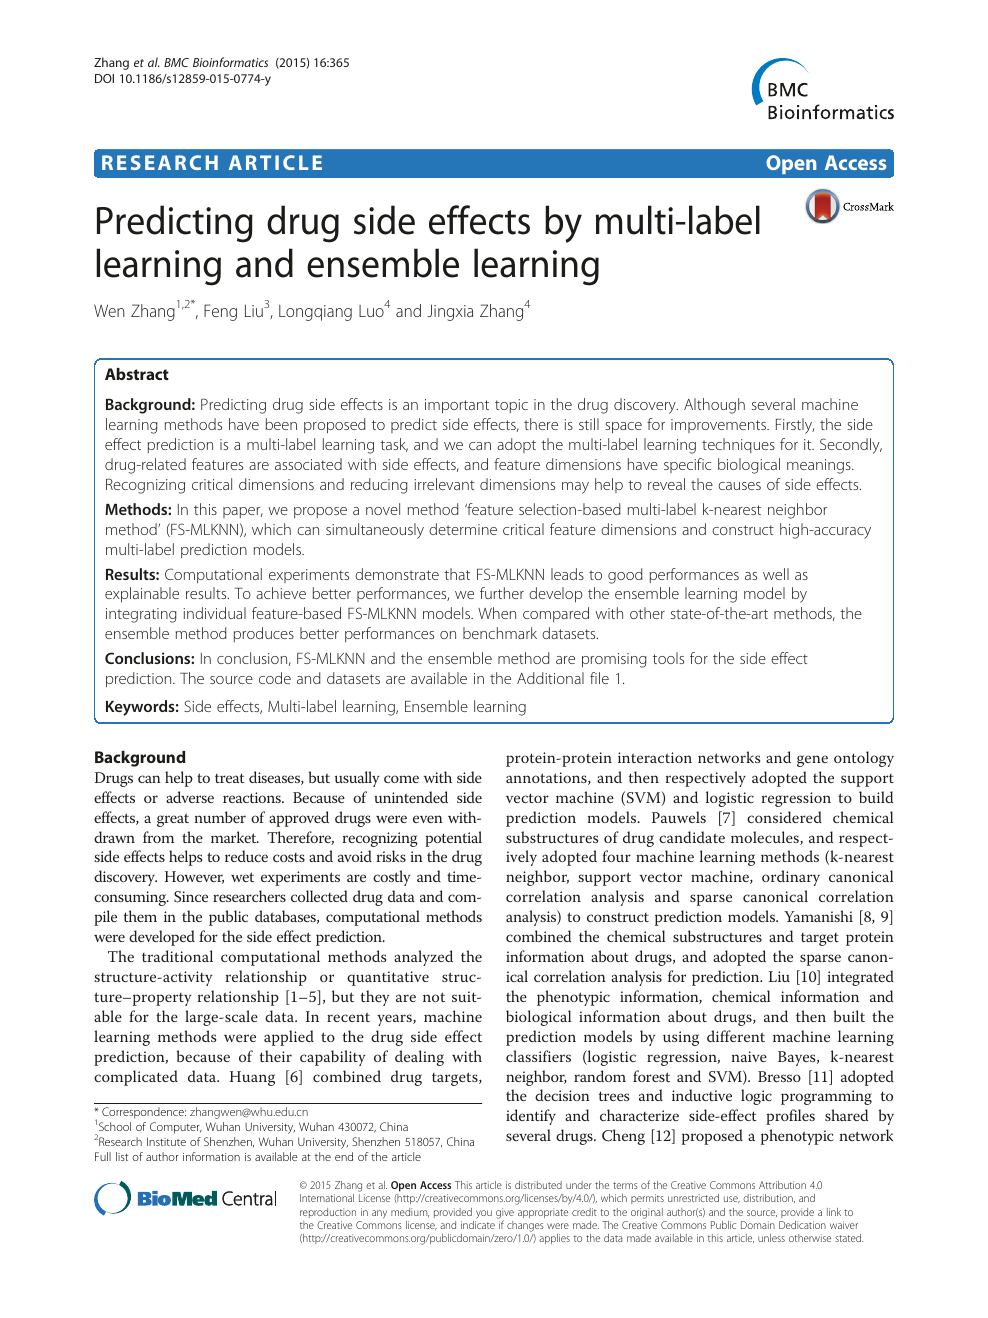 Predicting drug side effects by multi-label learning and ensemble